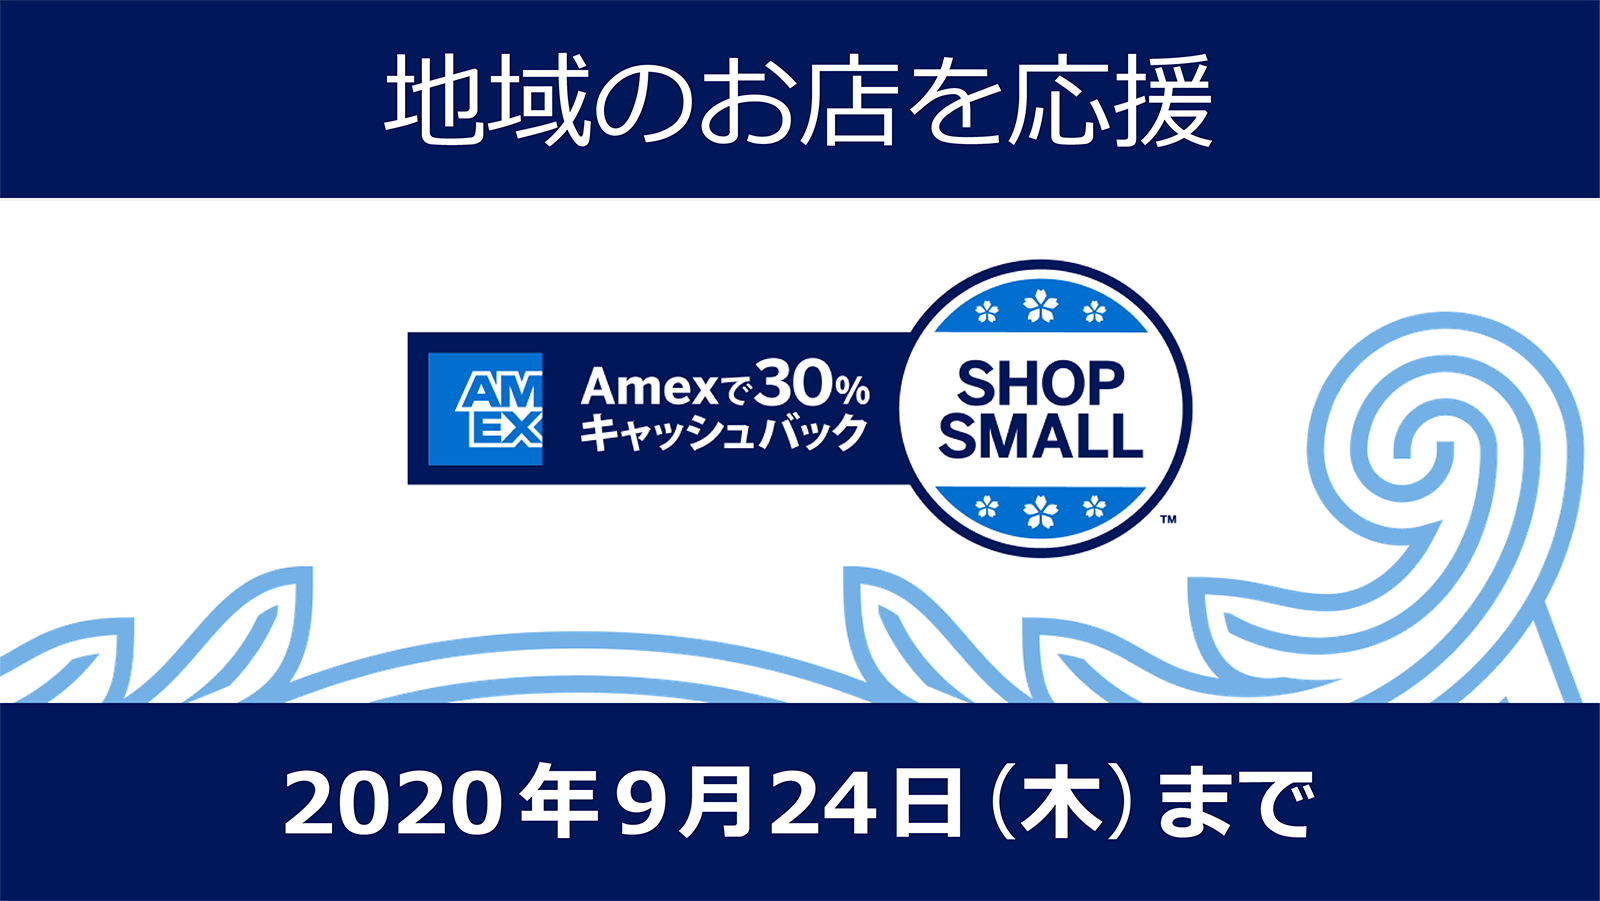 SHOP SMALL Amexで30%キャッシュバック